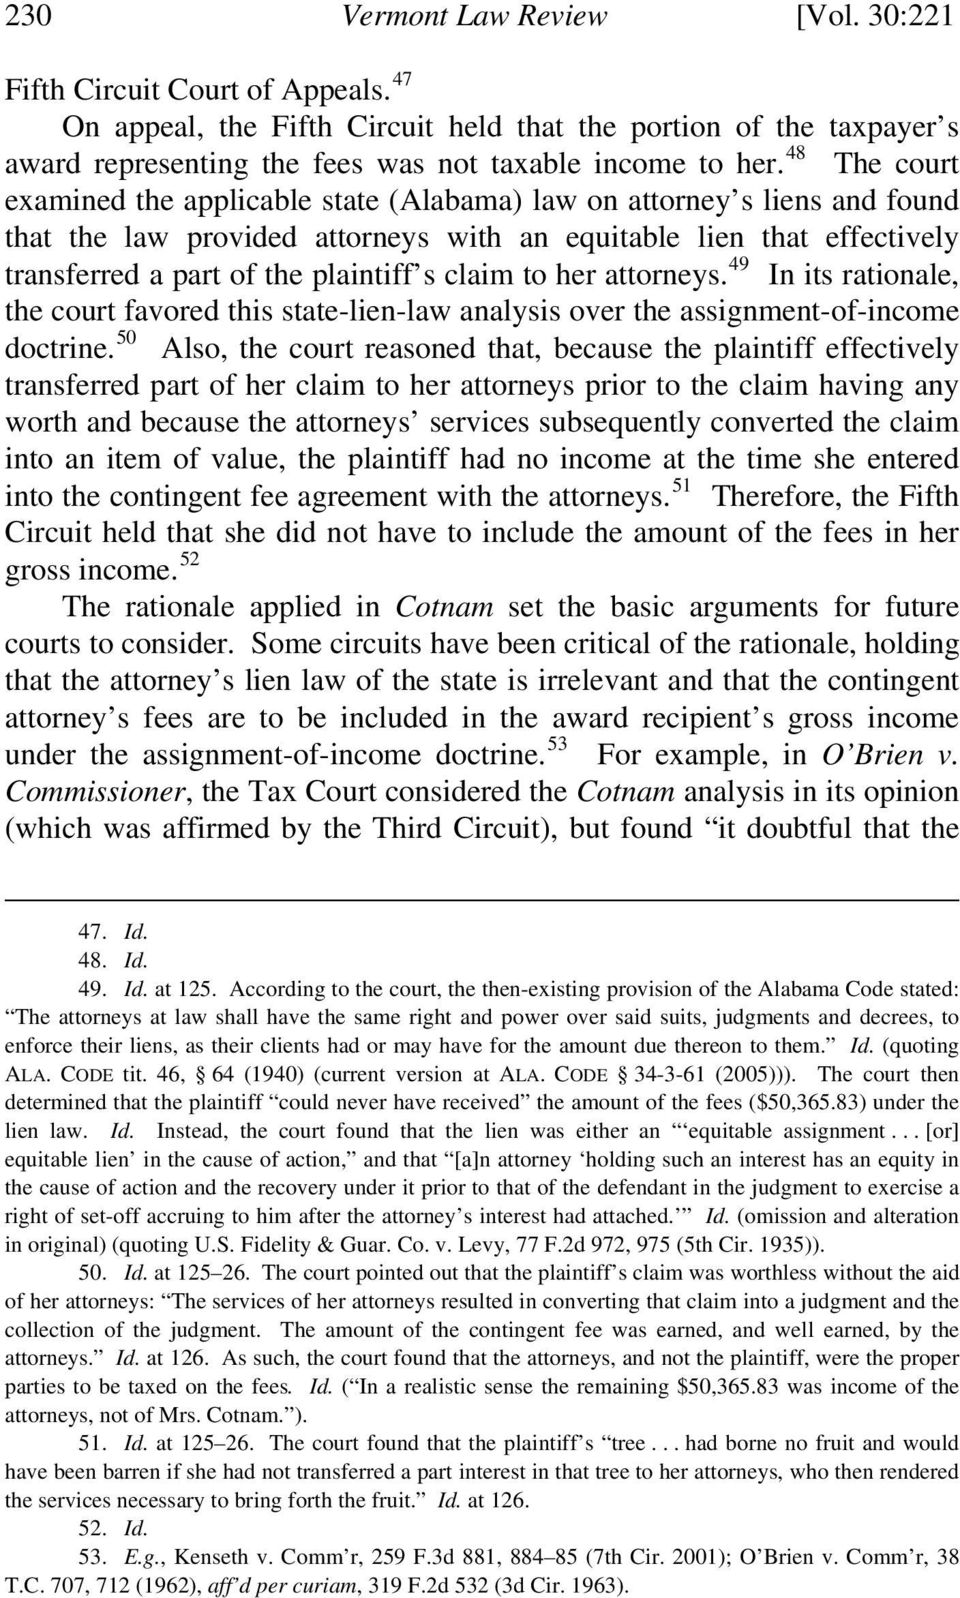 claim to her attorneys. 49 In its rationale, the court favored this state-lien-law analysis over the assignment-of-income doctrine.